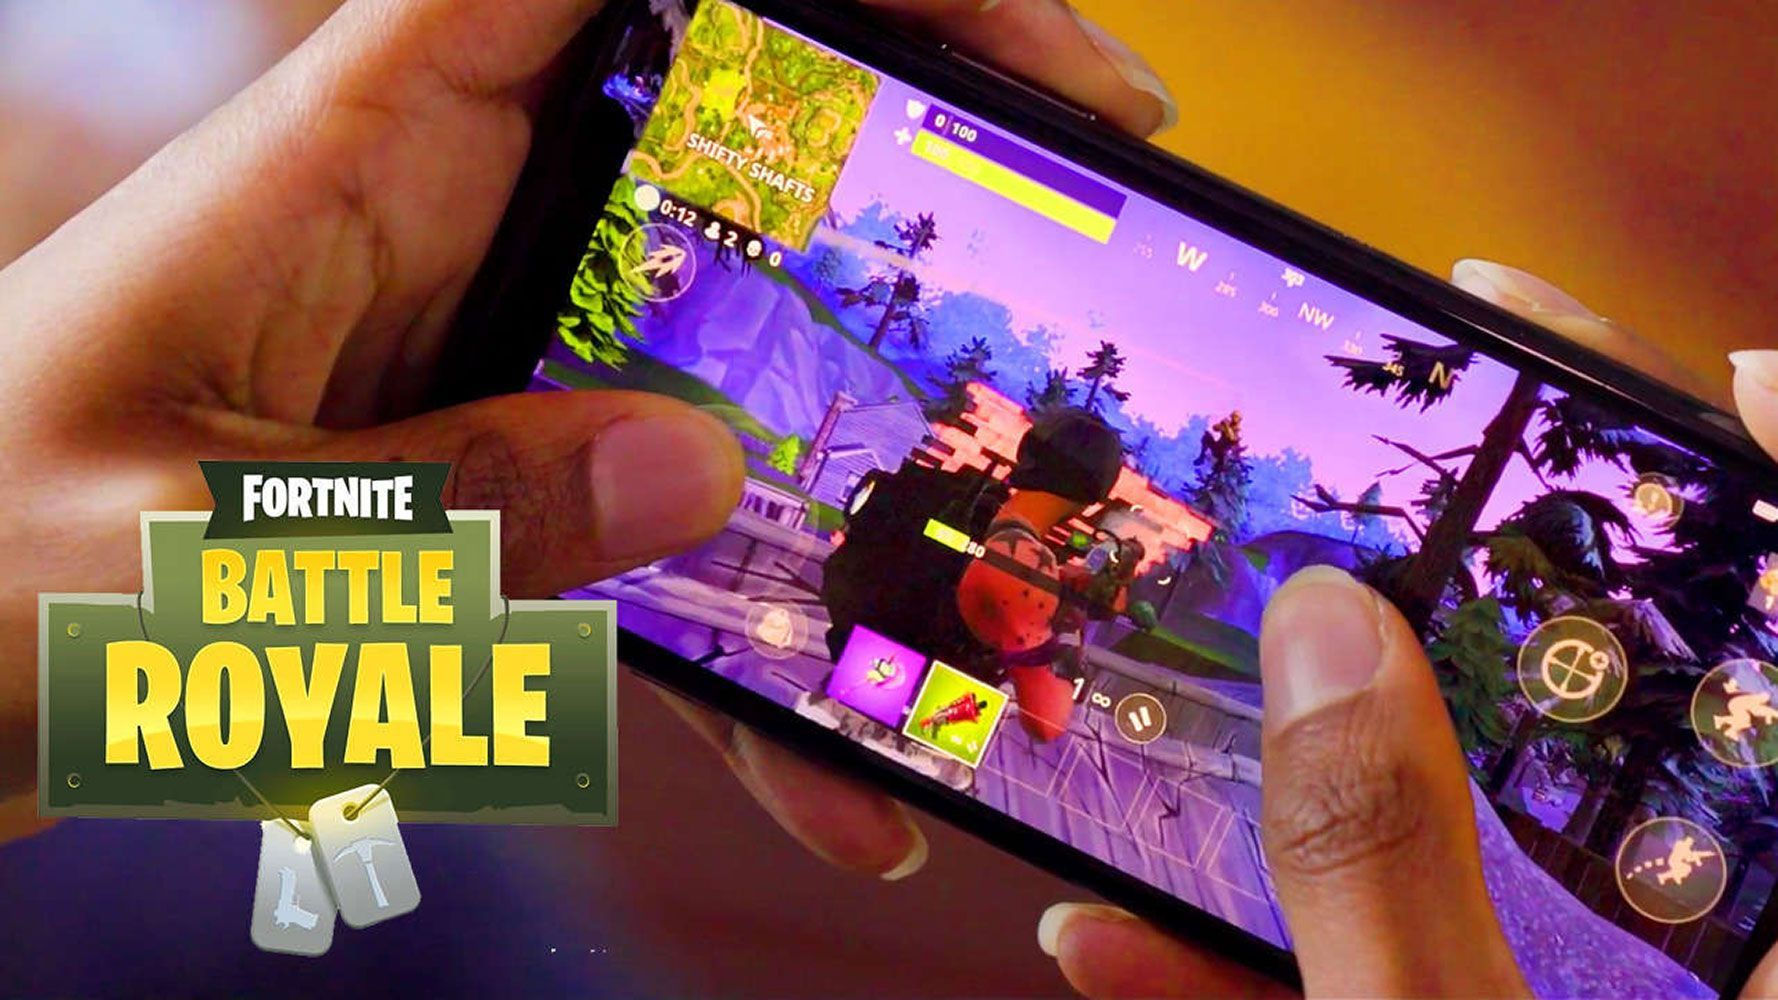 Fortnite installer allows hackers to install any app | Our Blog